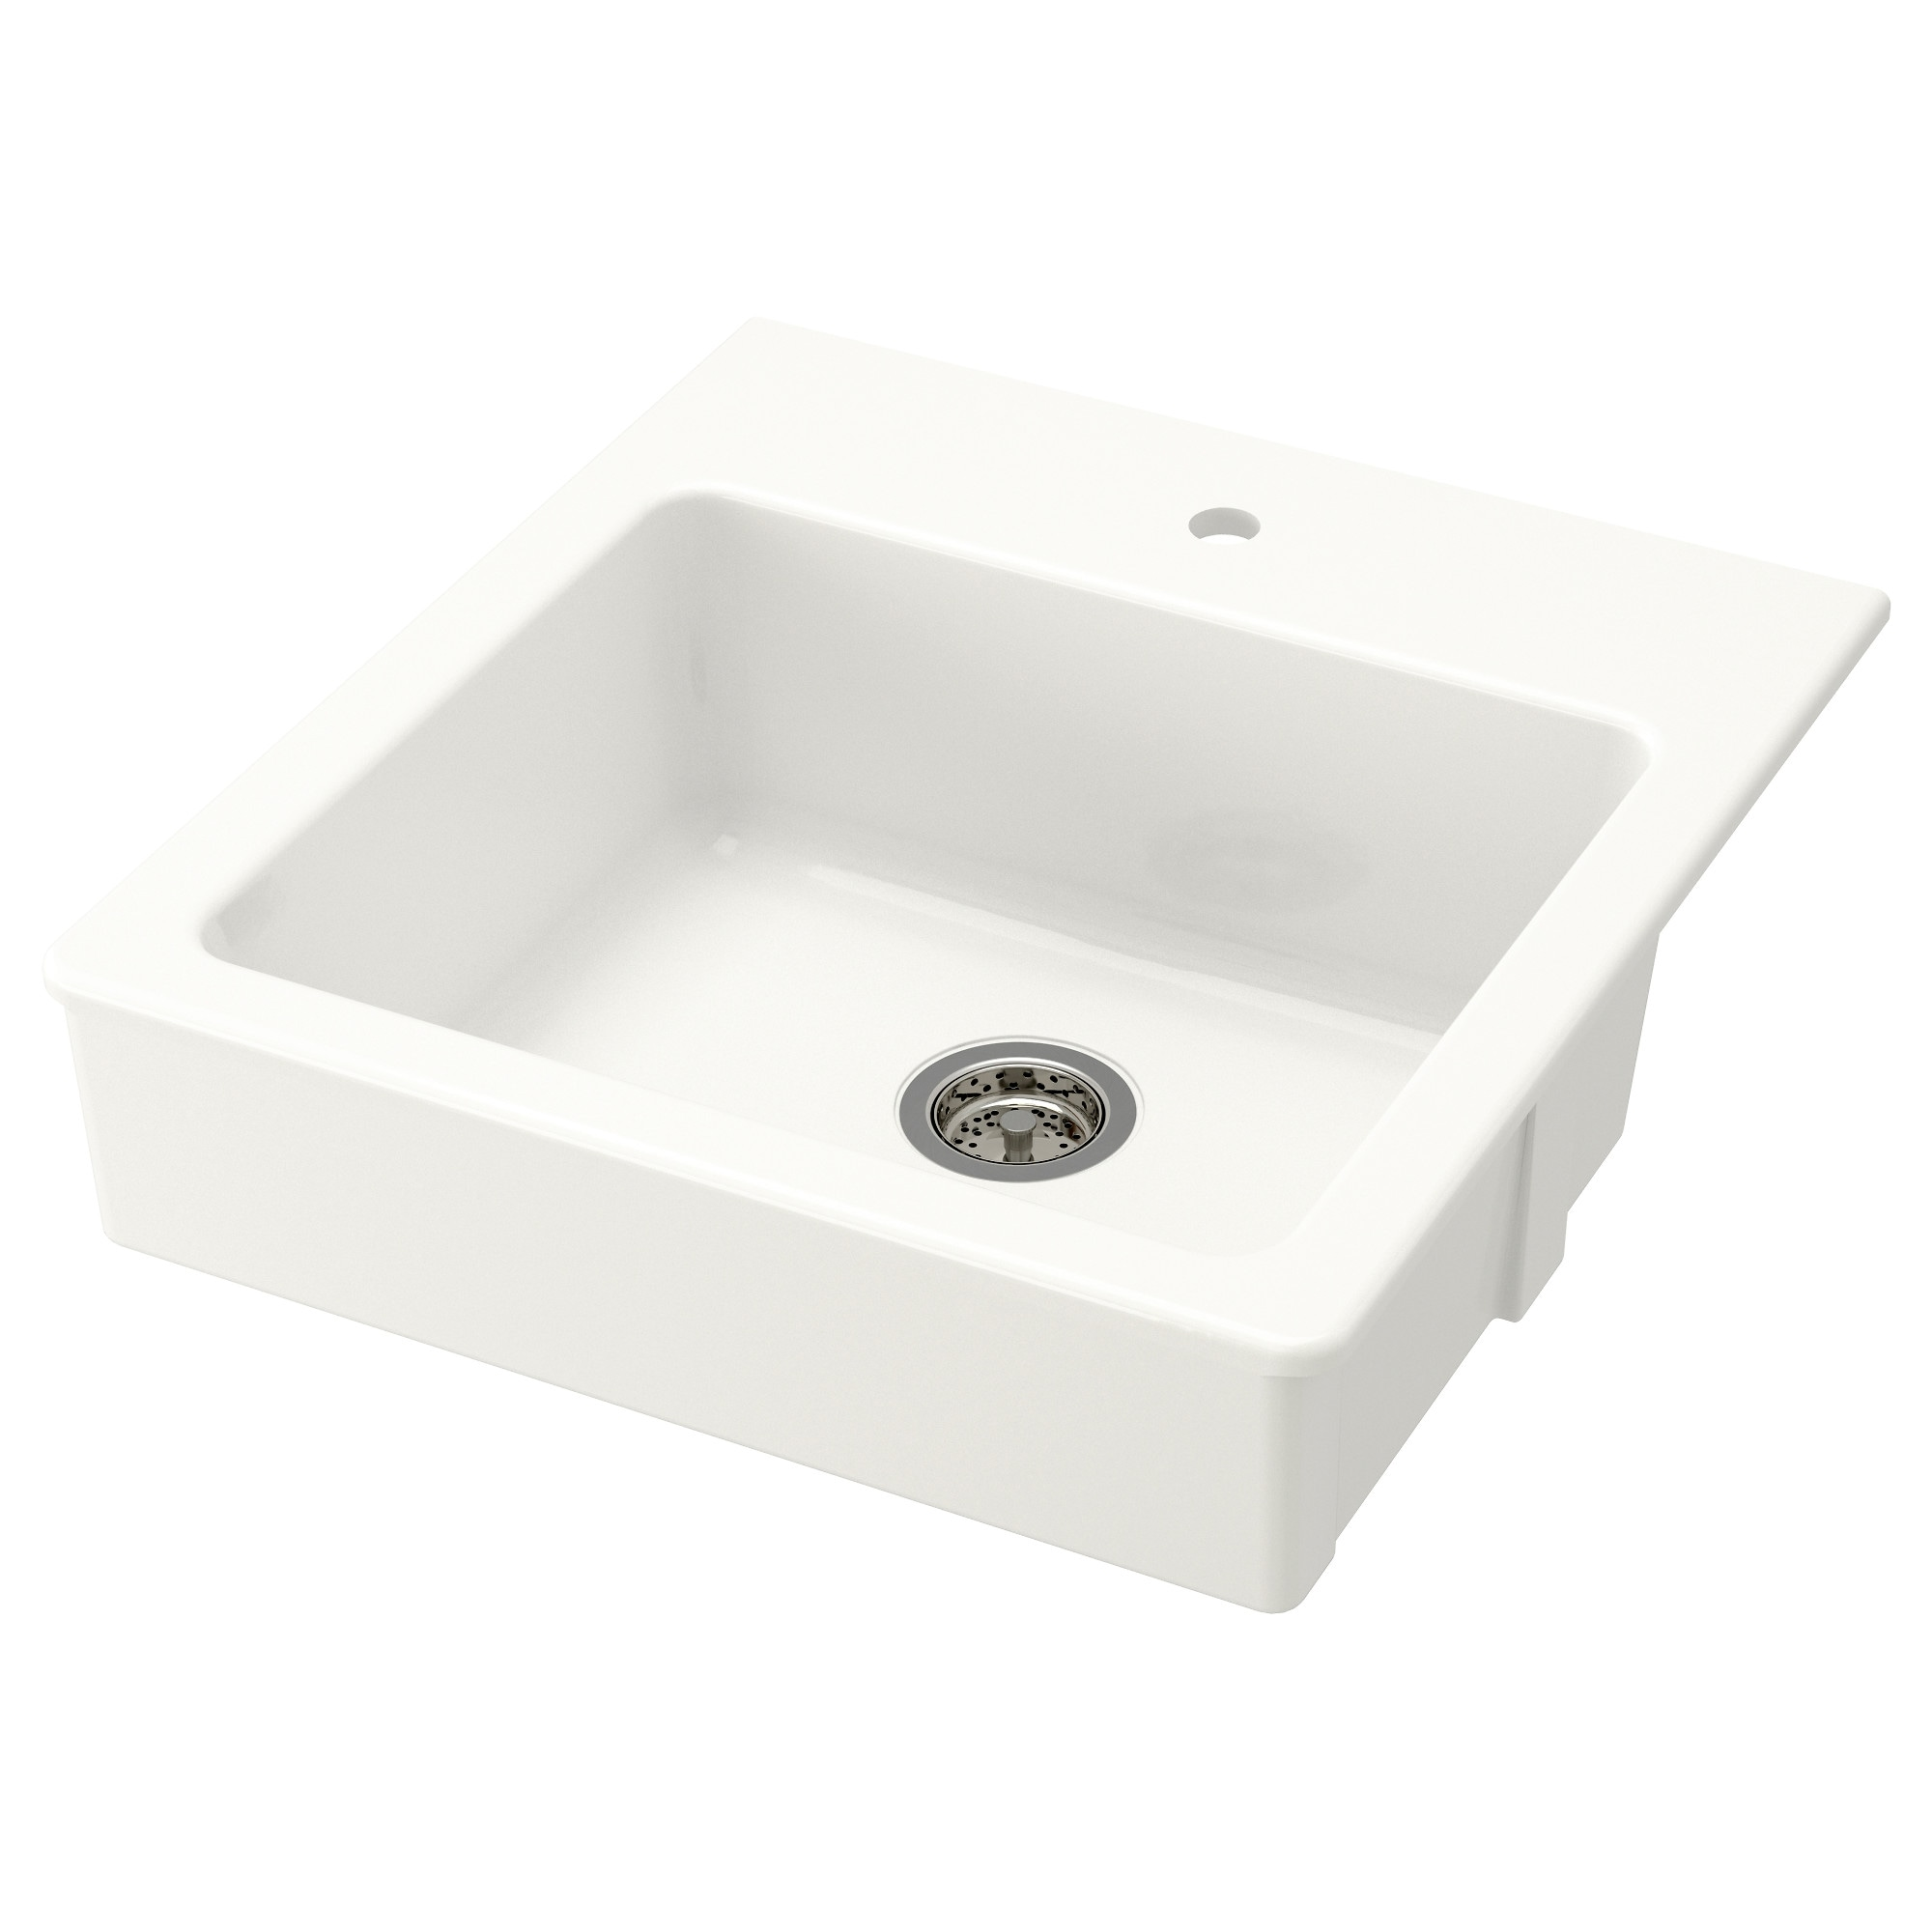 domsj single bowl apron front sink white width 24 38 depth - White Single Basin Kitchen Sink